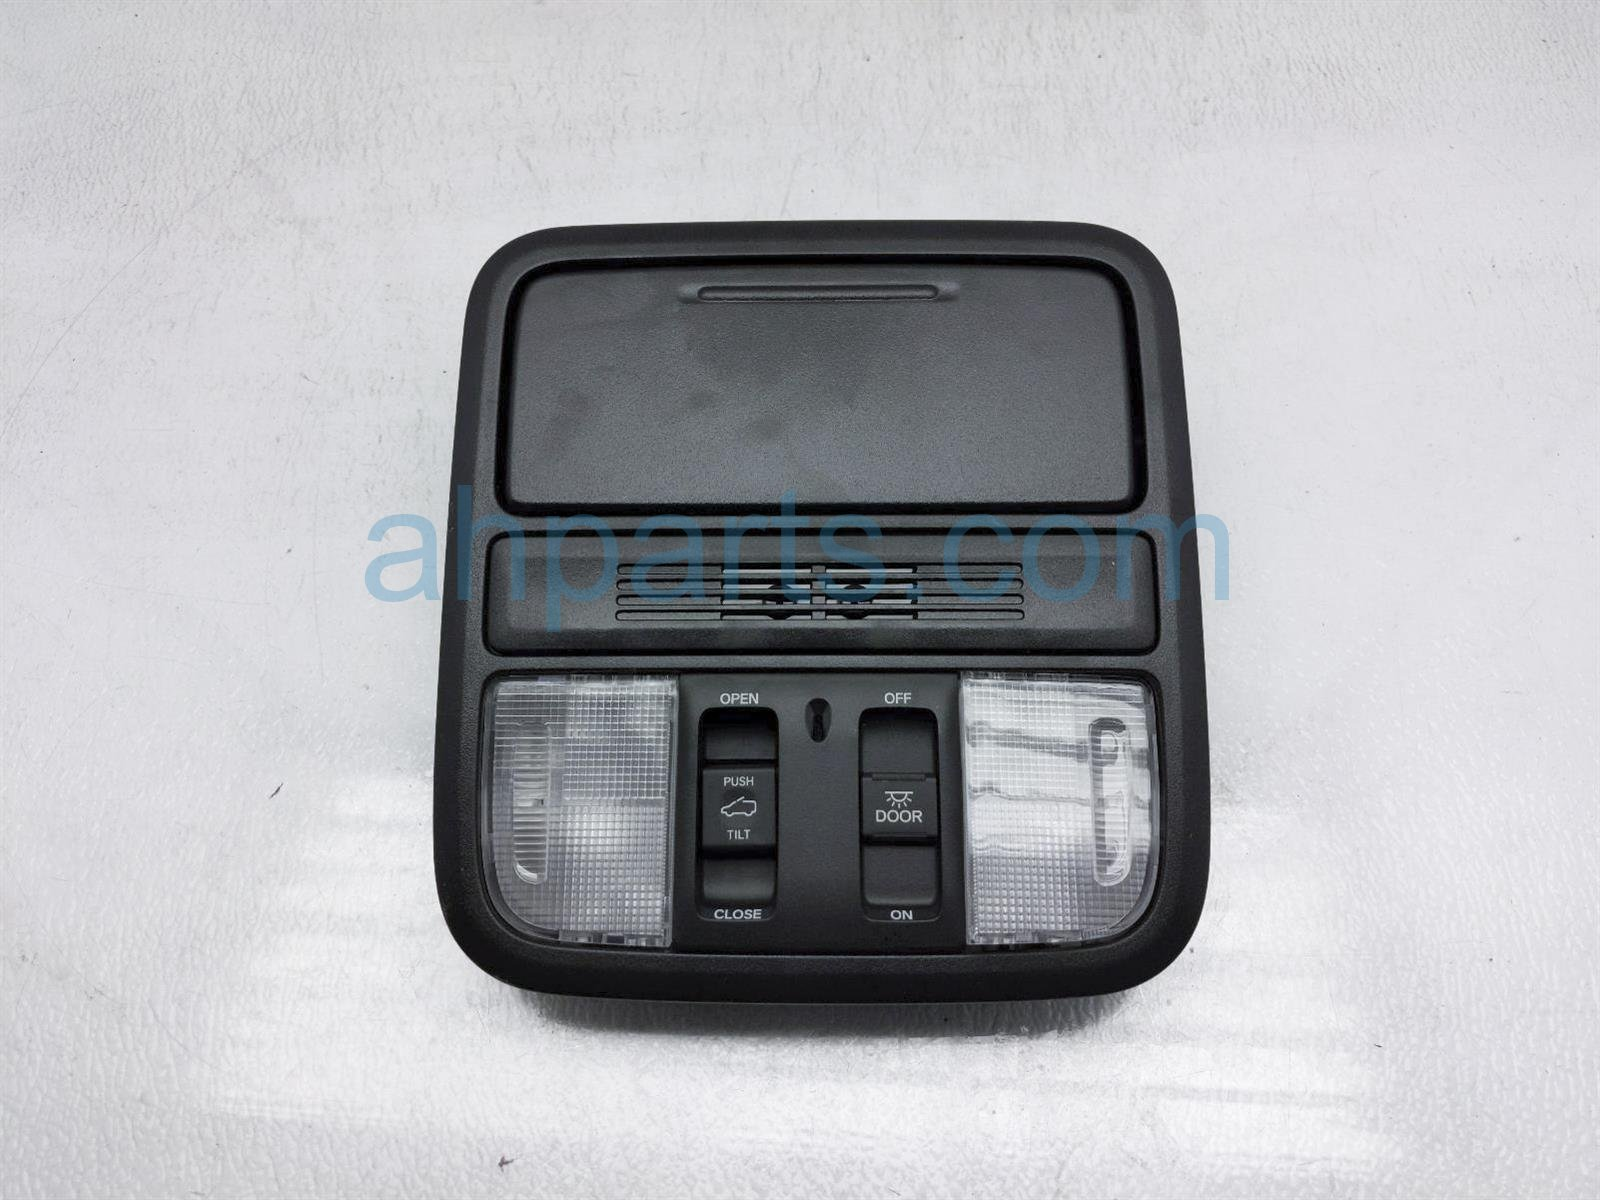 2019 Honda Passport Map Light / Roof Console   Black 34404 TK8 A01 Replacement